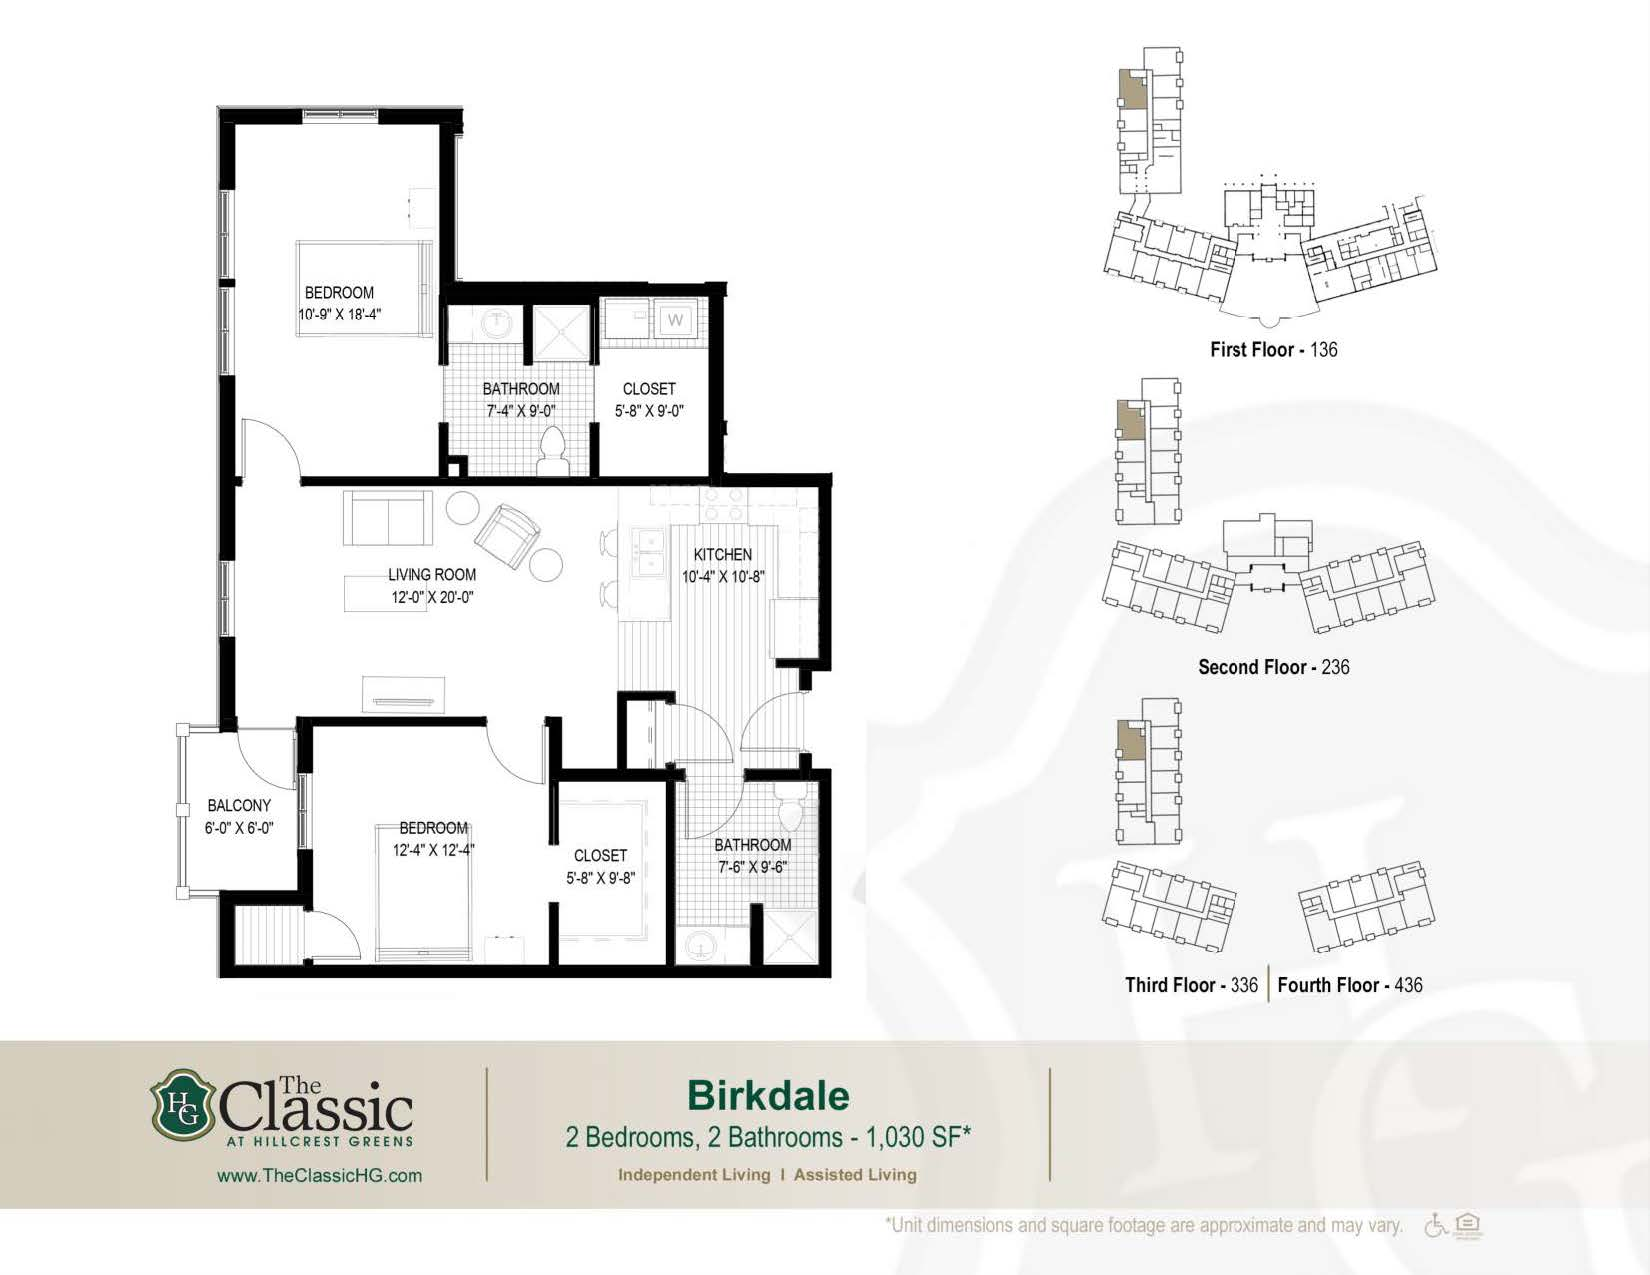 The Birkdale floor plan.